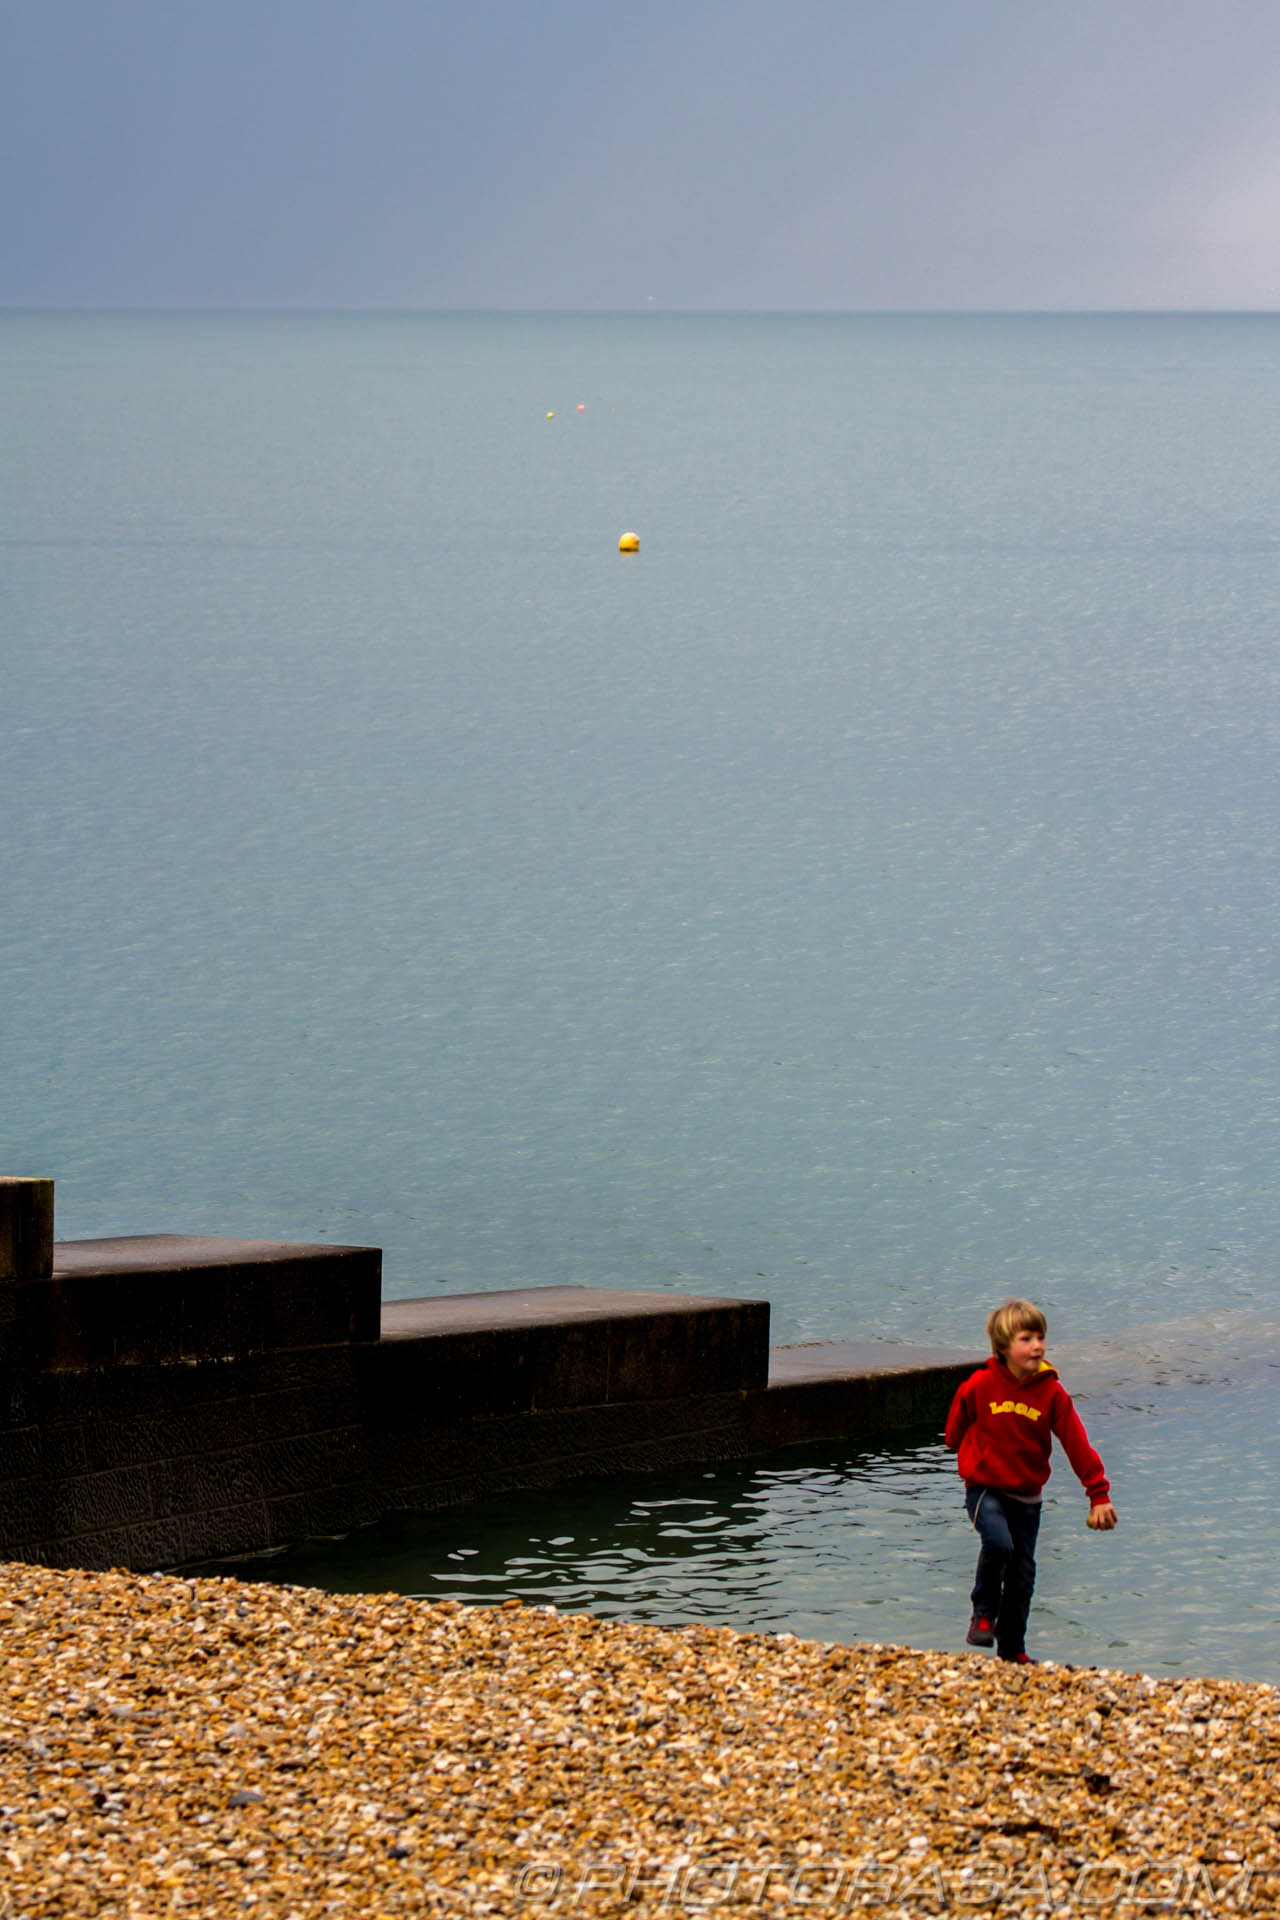 http://photorasa.com/sea-lyme-regis/buoy-and-boy/